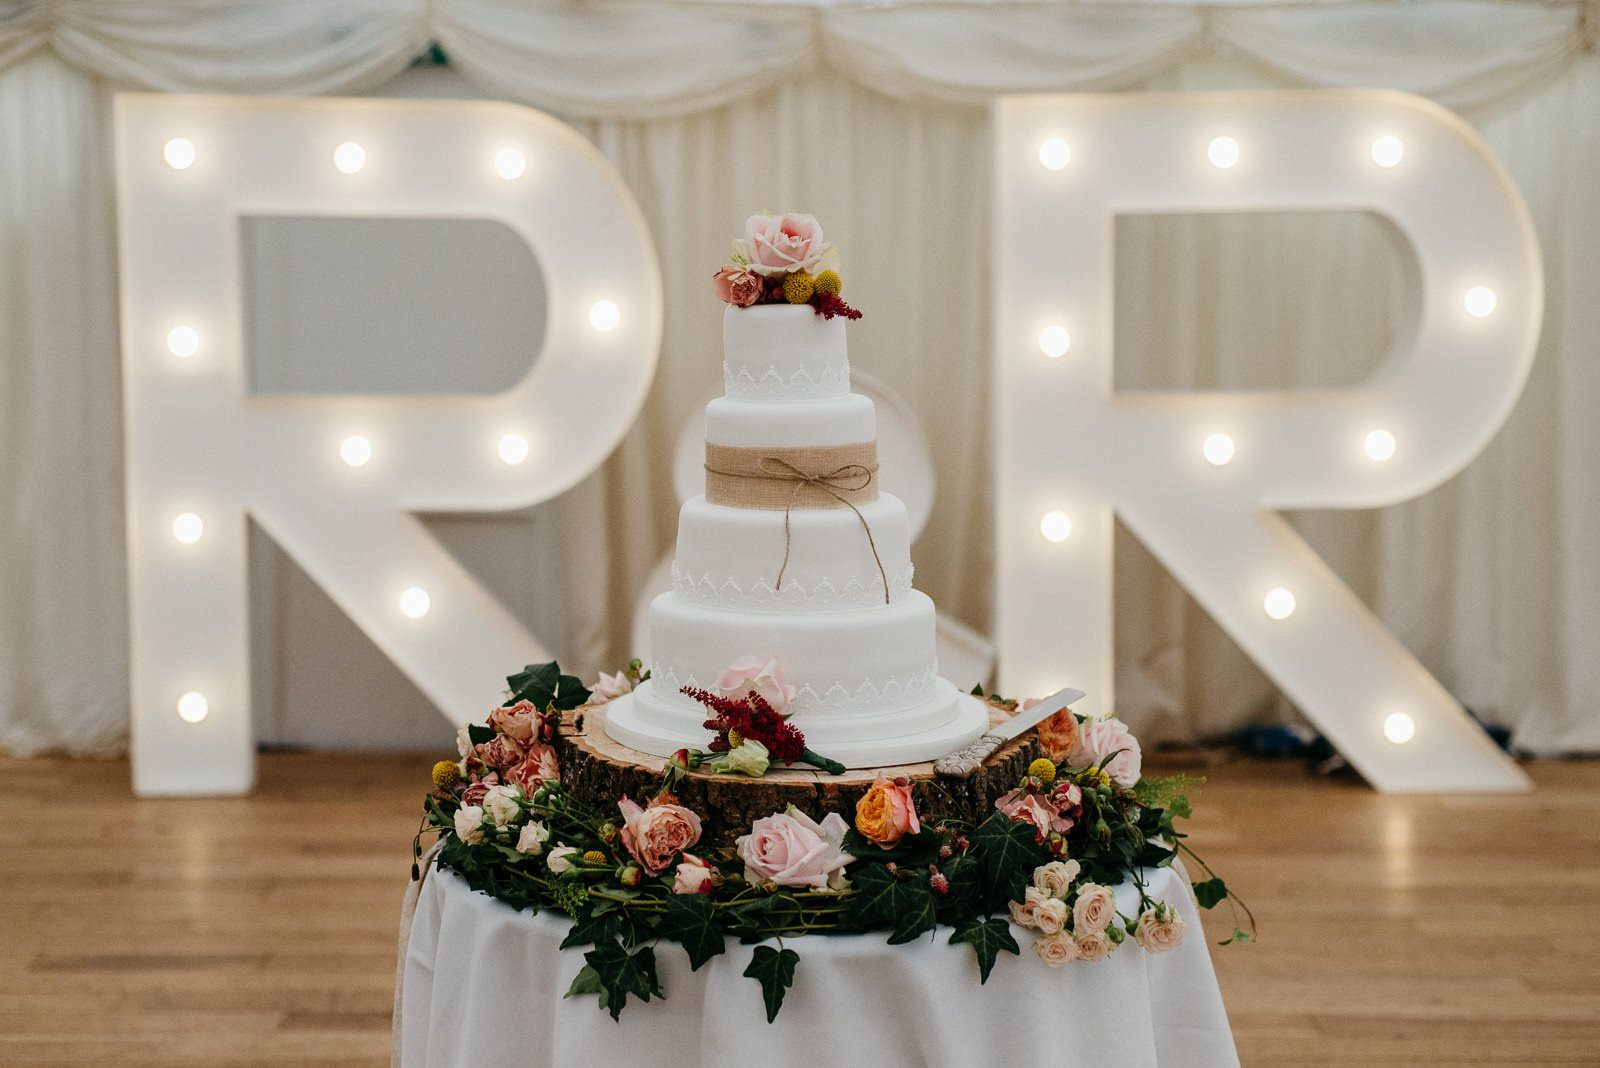 A white iced wedding cake adored with pale pink, peach and yellow flowers and lashings of foliage.